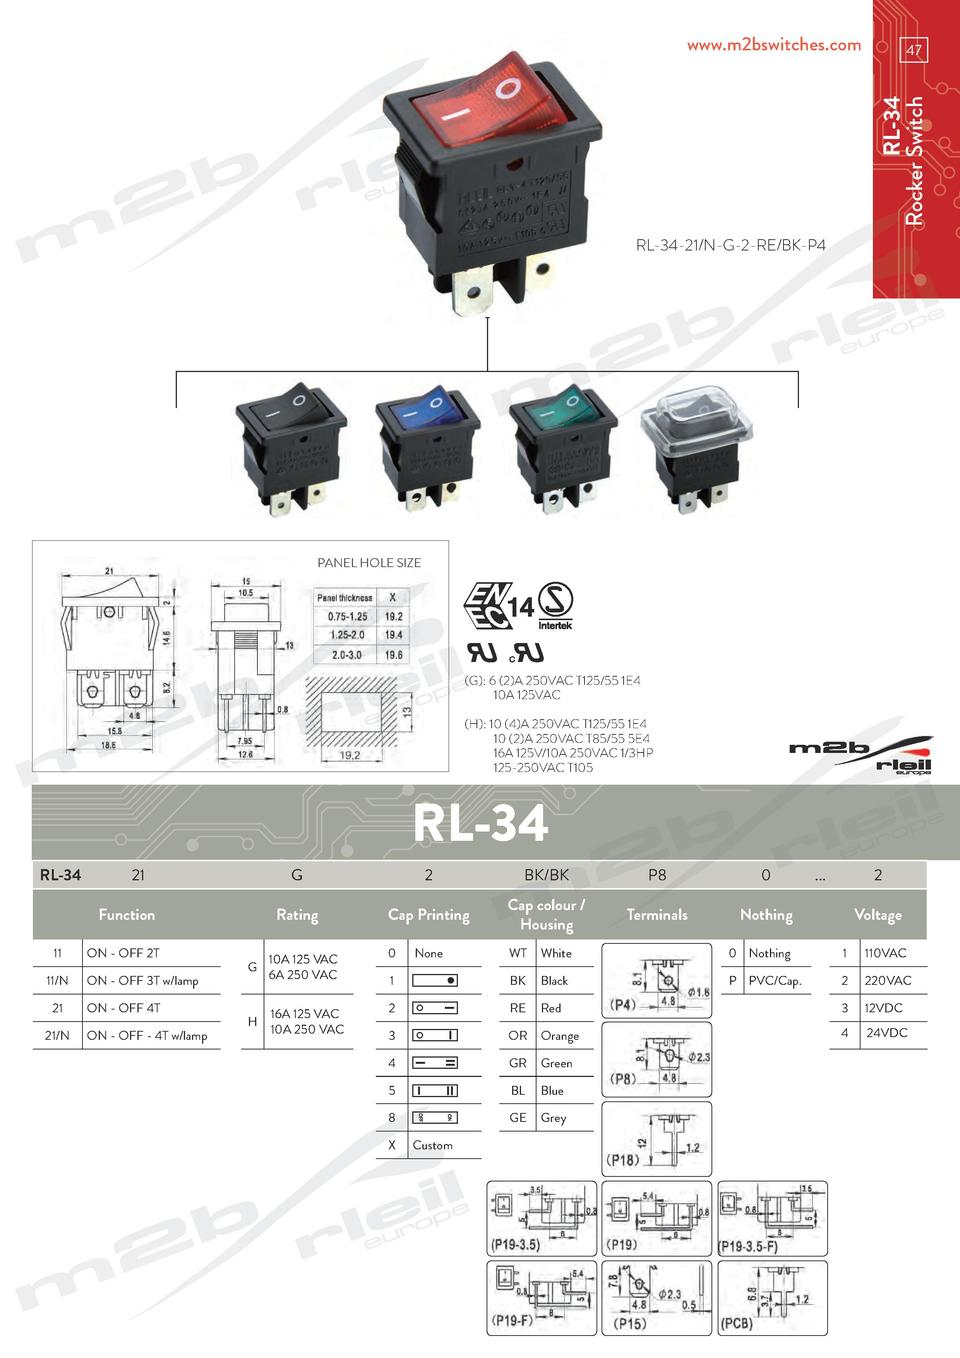 www.m2bswitches.com  RL-34 Rocker Switch  47  RL-34-21 N-G-2-RE BK-P4  PANEL HOLE SIZE   G   6  2 A 250VAC T125 55 1E4   1...